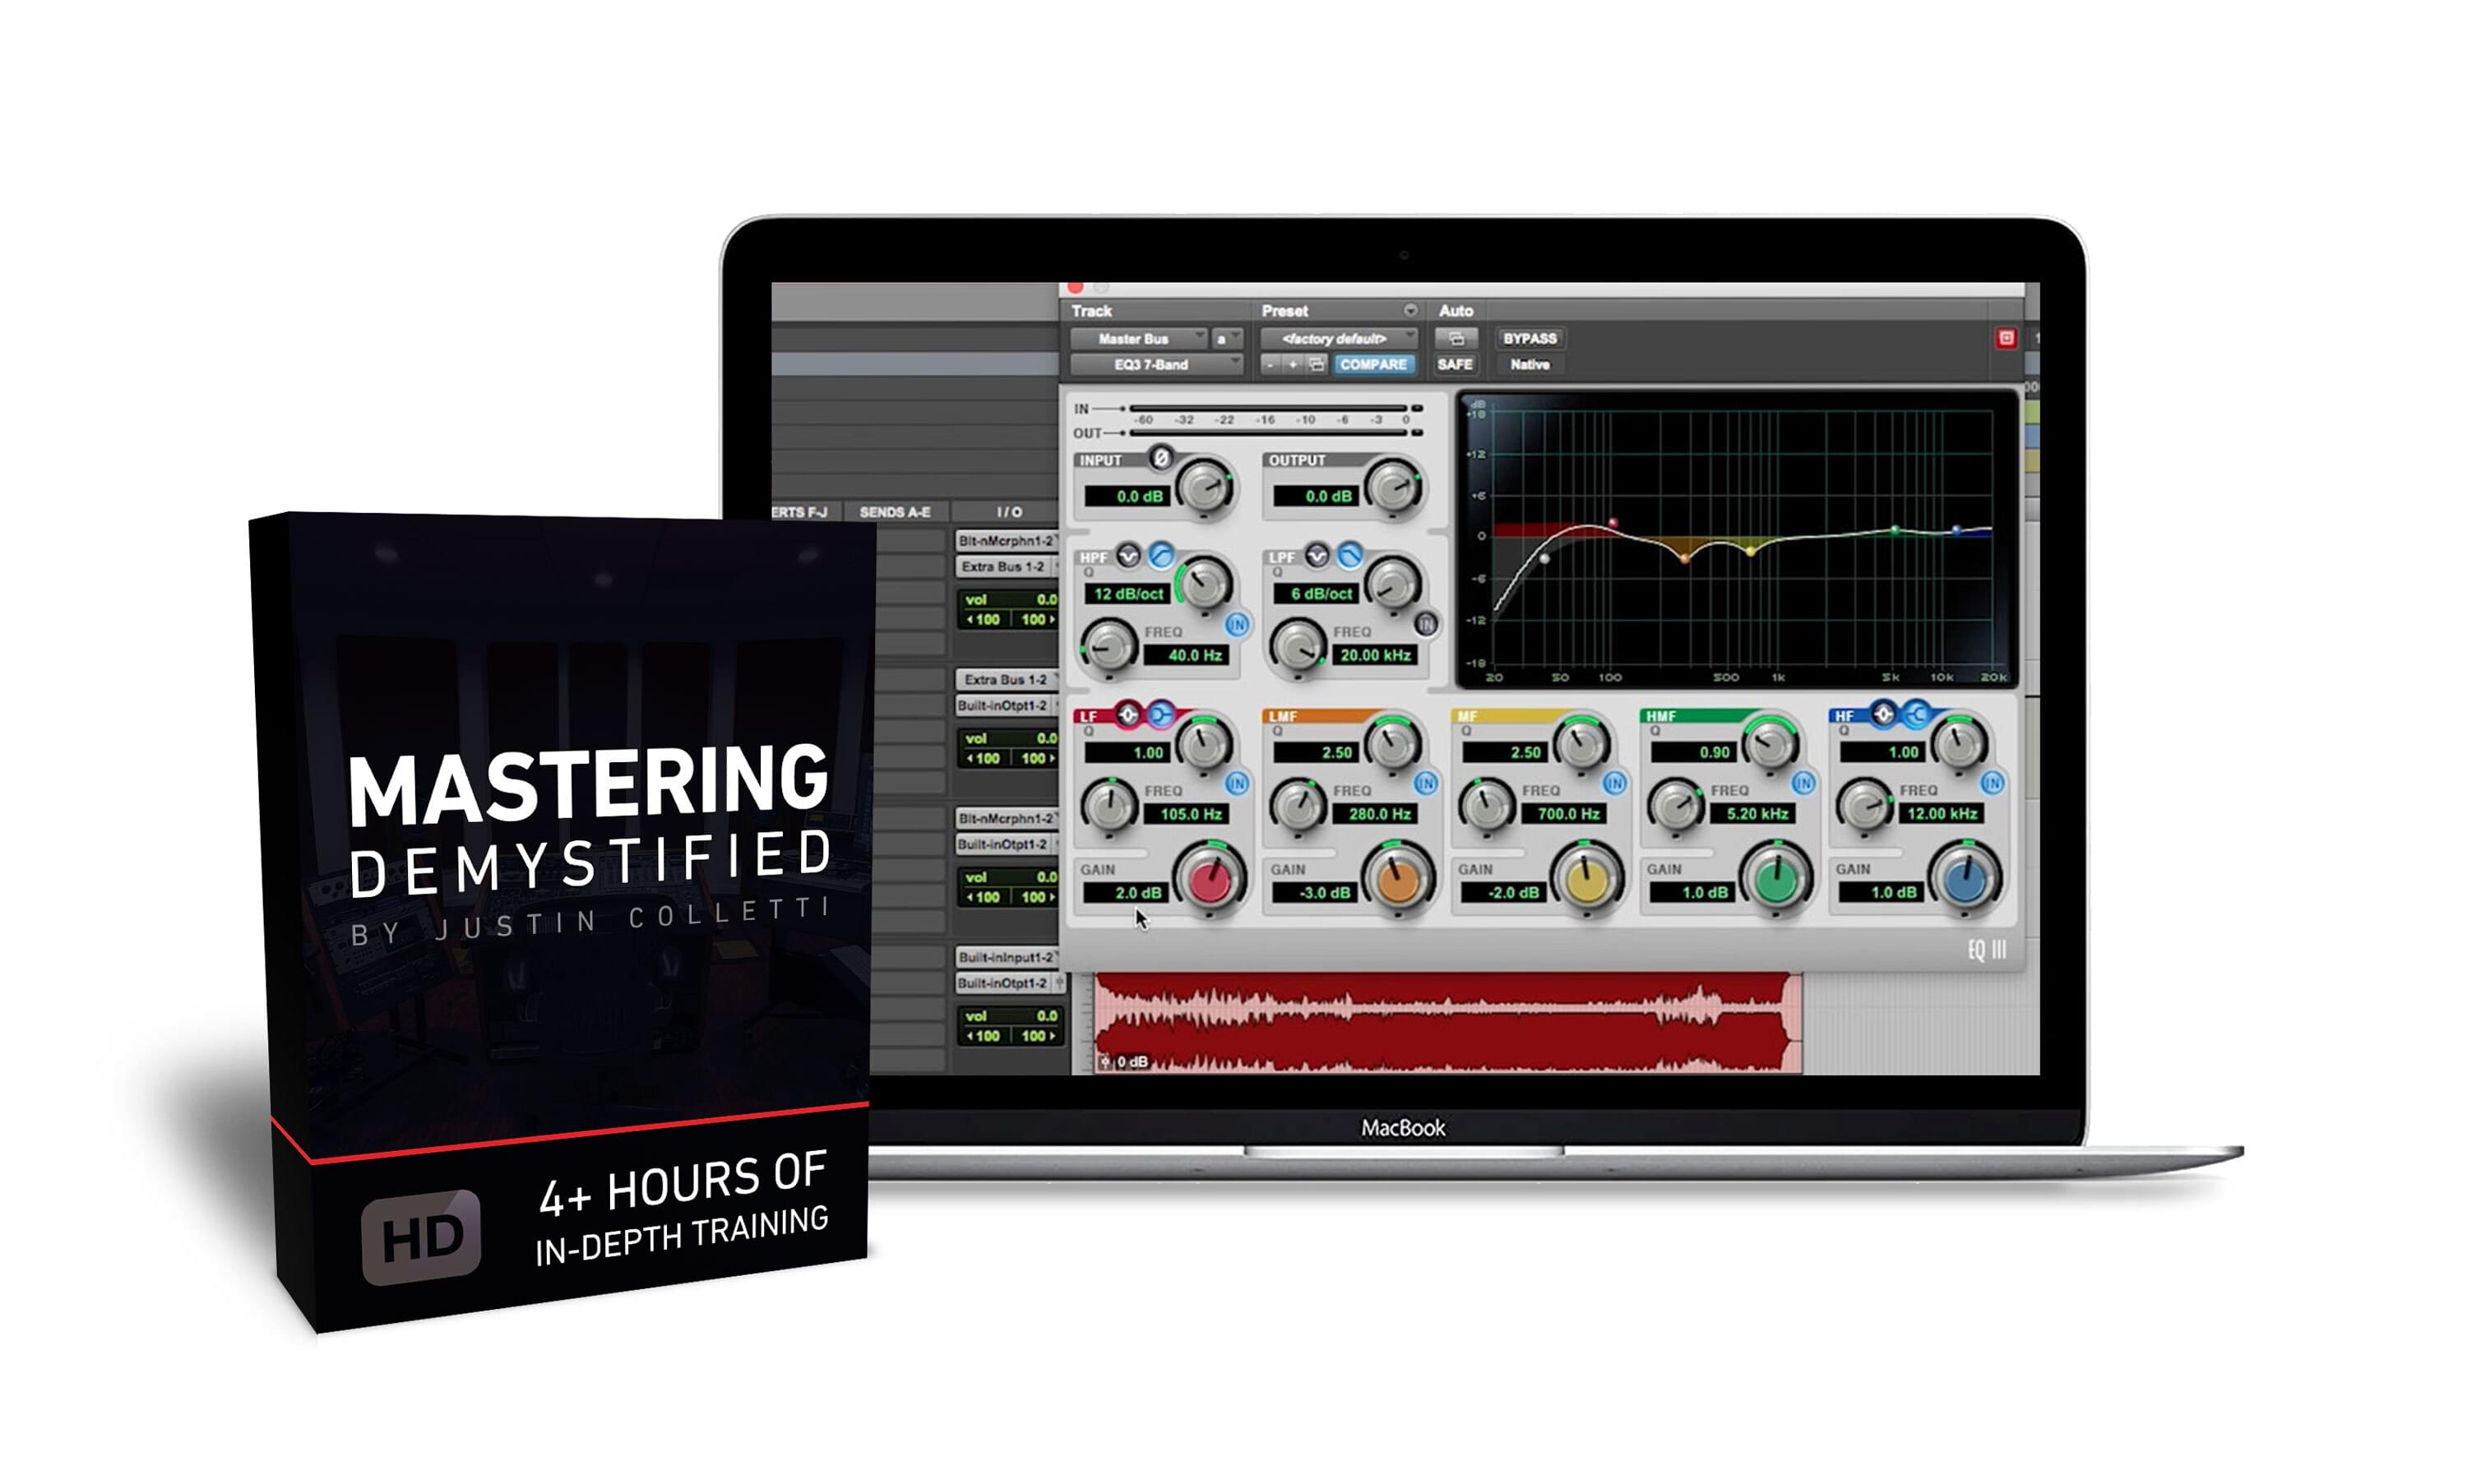 Mastering Demystified product box and screenshot